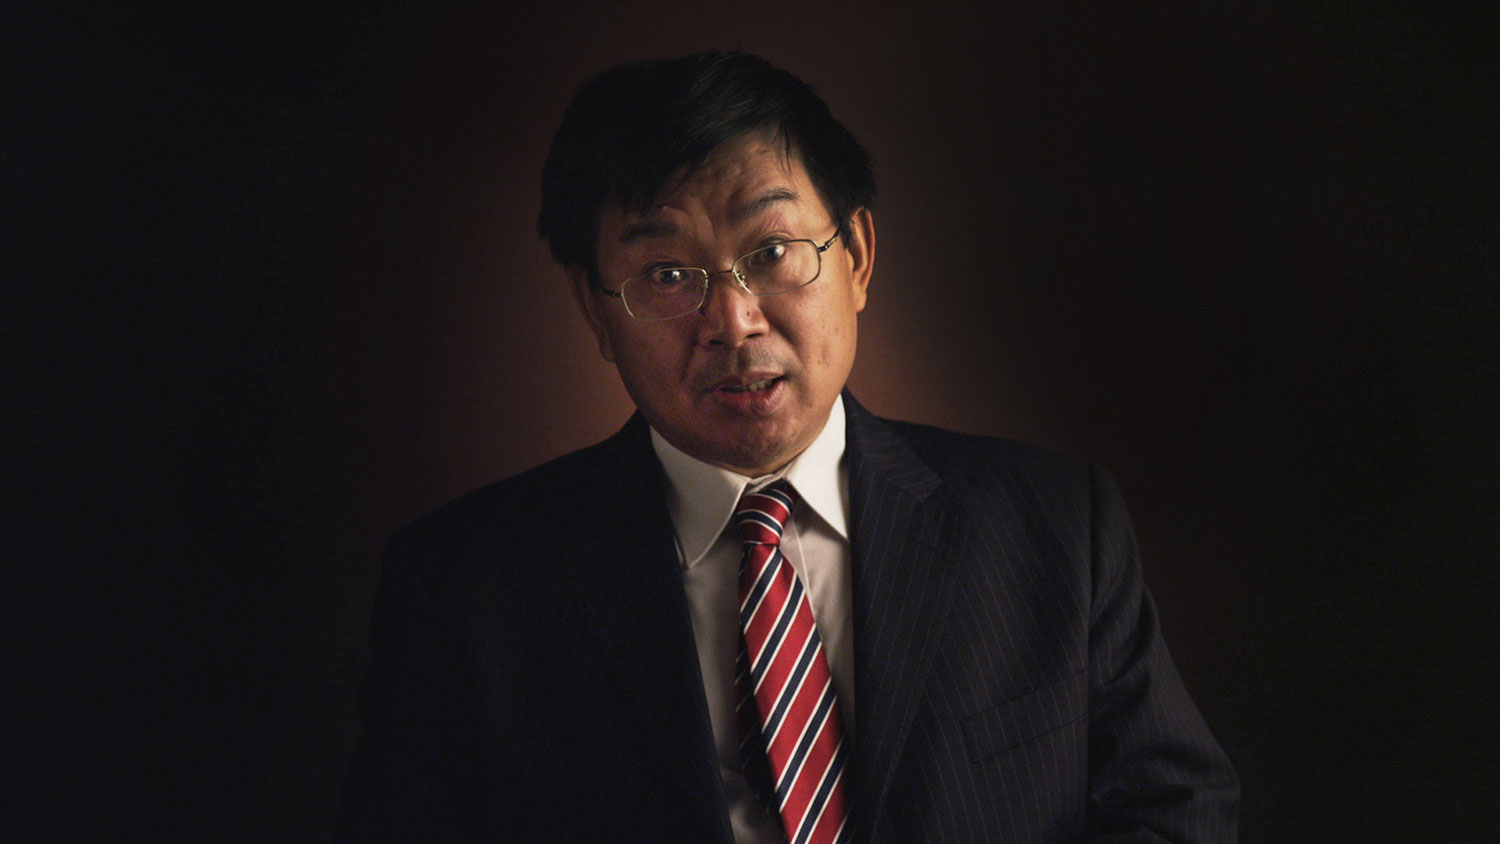 Prof. Xu Guoqi, Hong Kong University